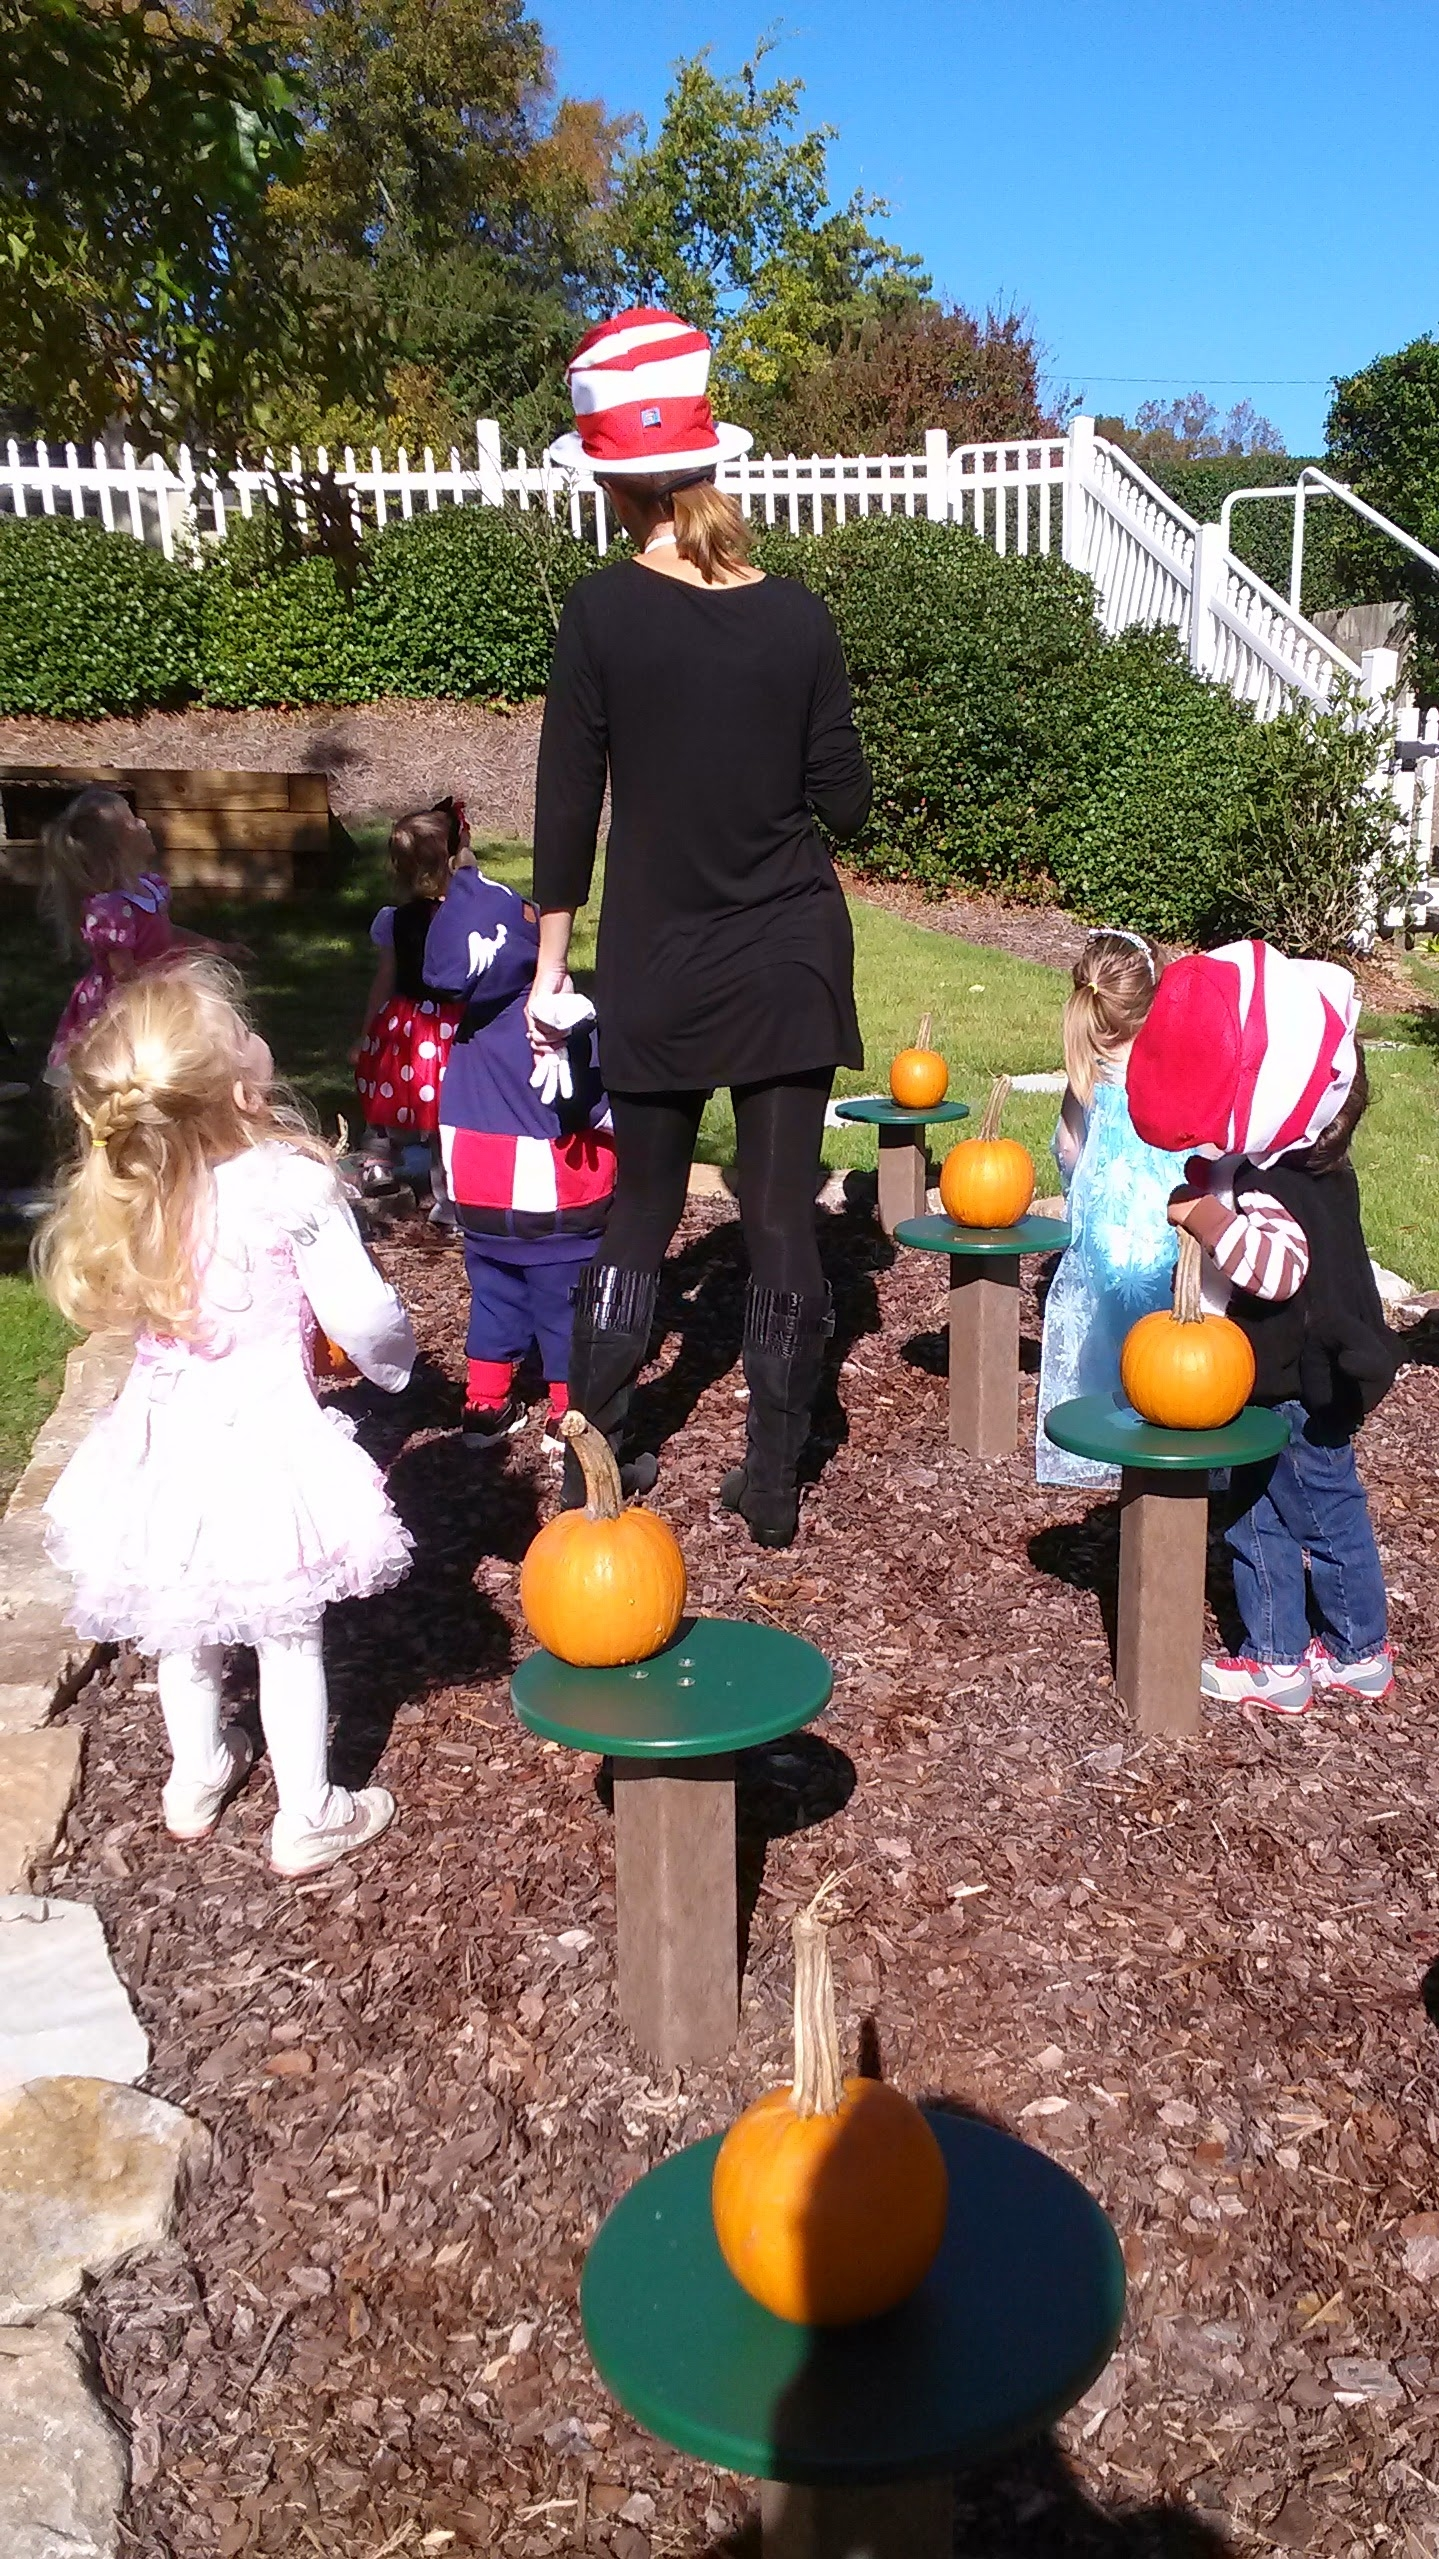 Picking pumpkins in our outdoor classroom.